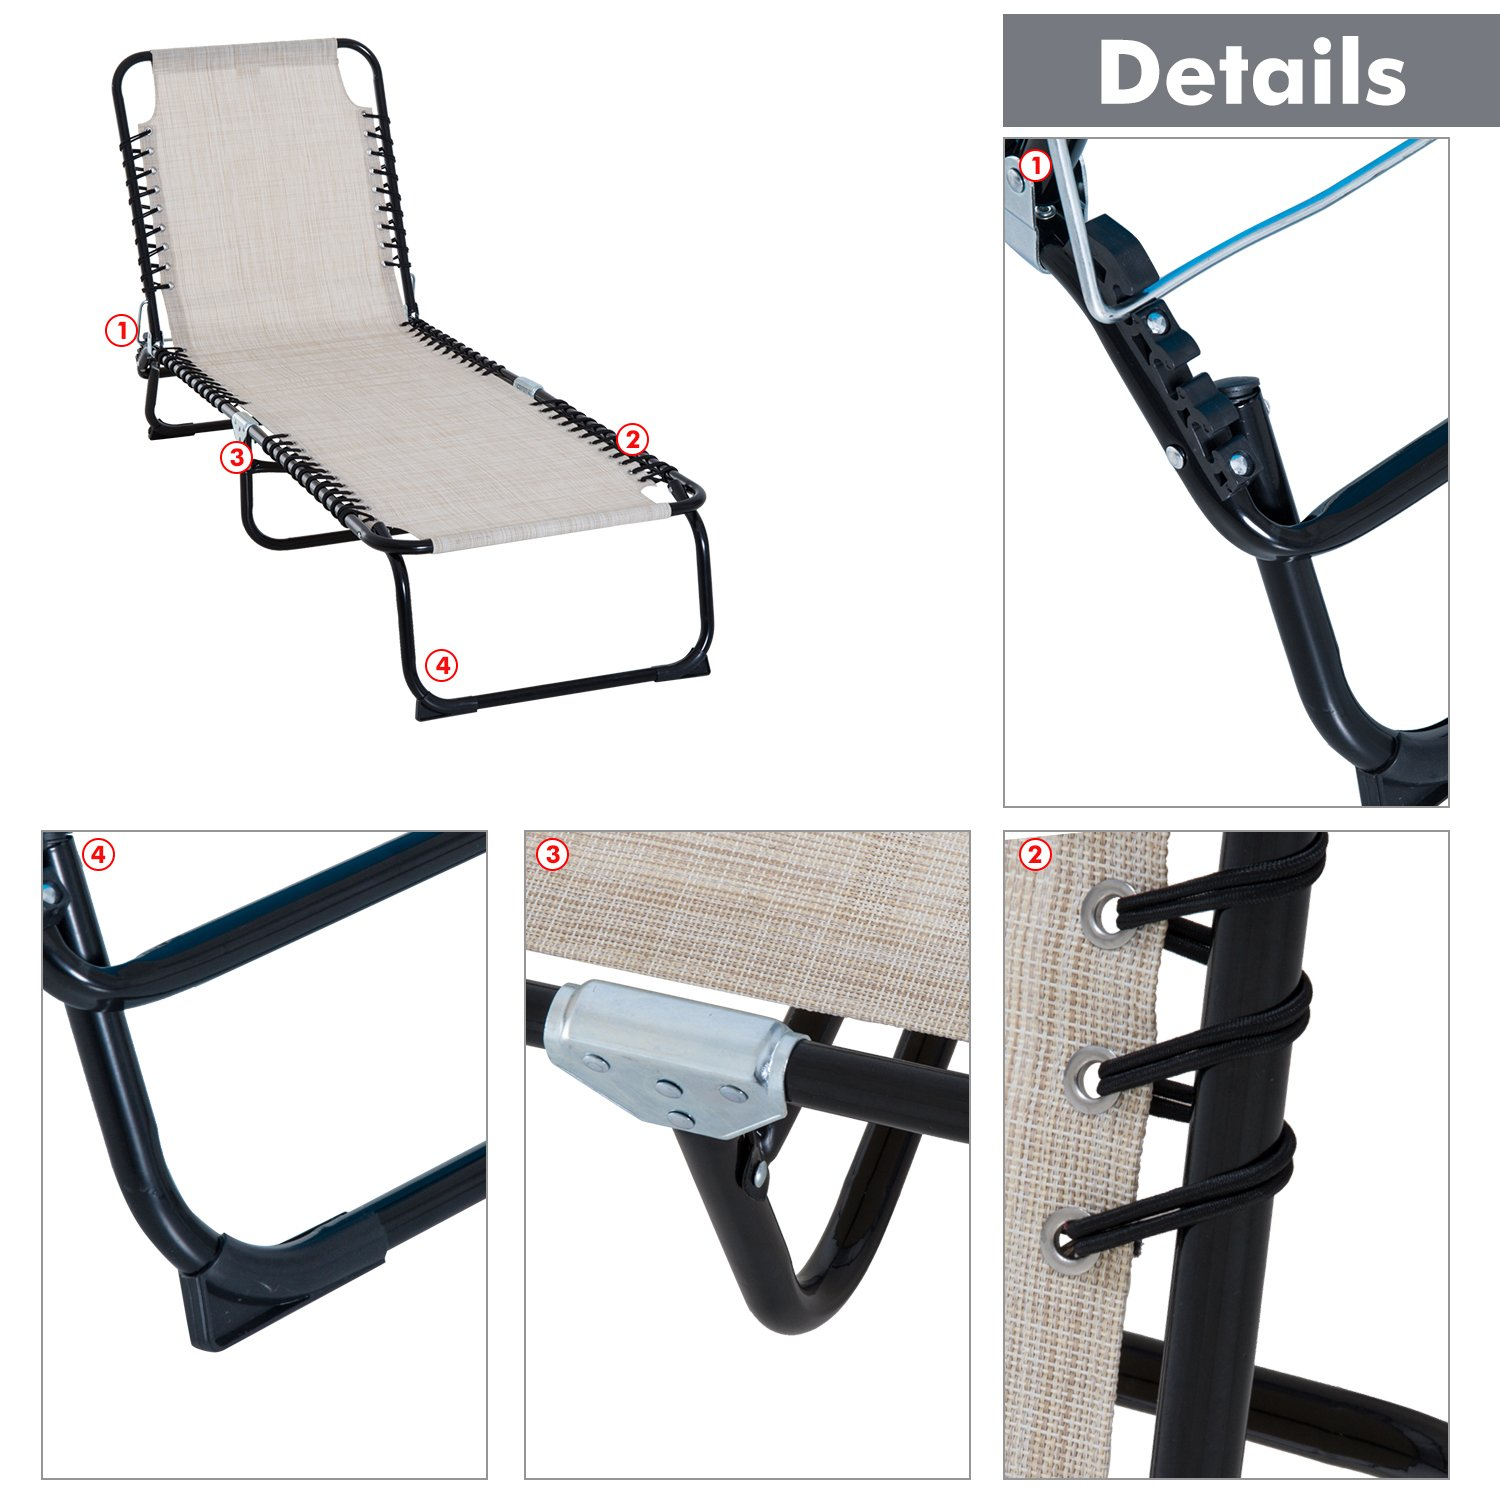 Outsunny 3-Position Reclining Beach Chair Chaise Lounge Folding Chair - Cream White by Outsunny (Image #5)